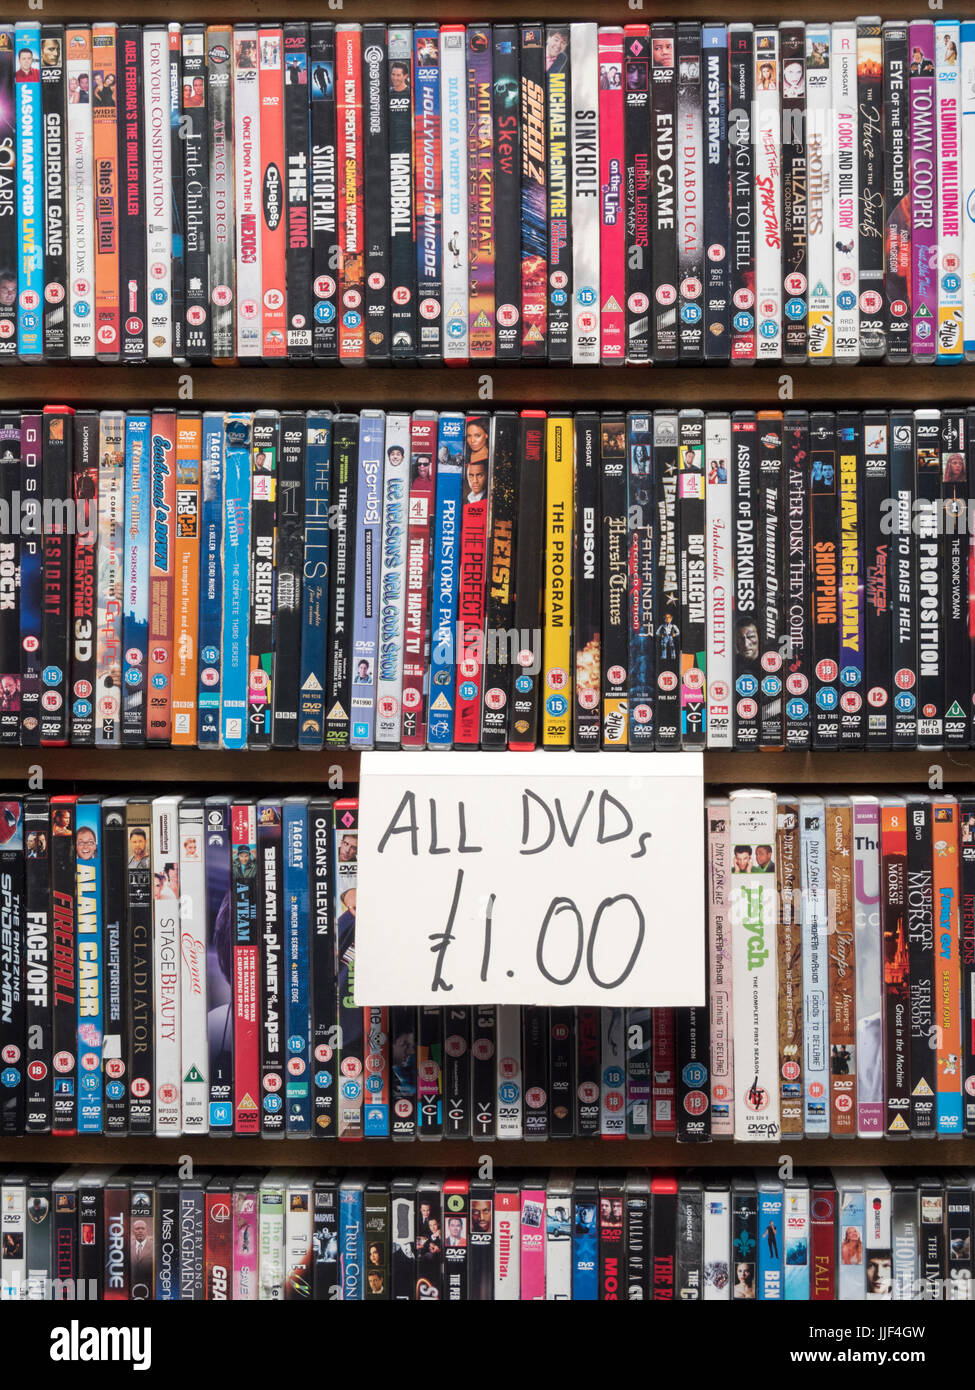 A close up of DVDs for sale on a market stall in the UK - Stock Image